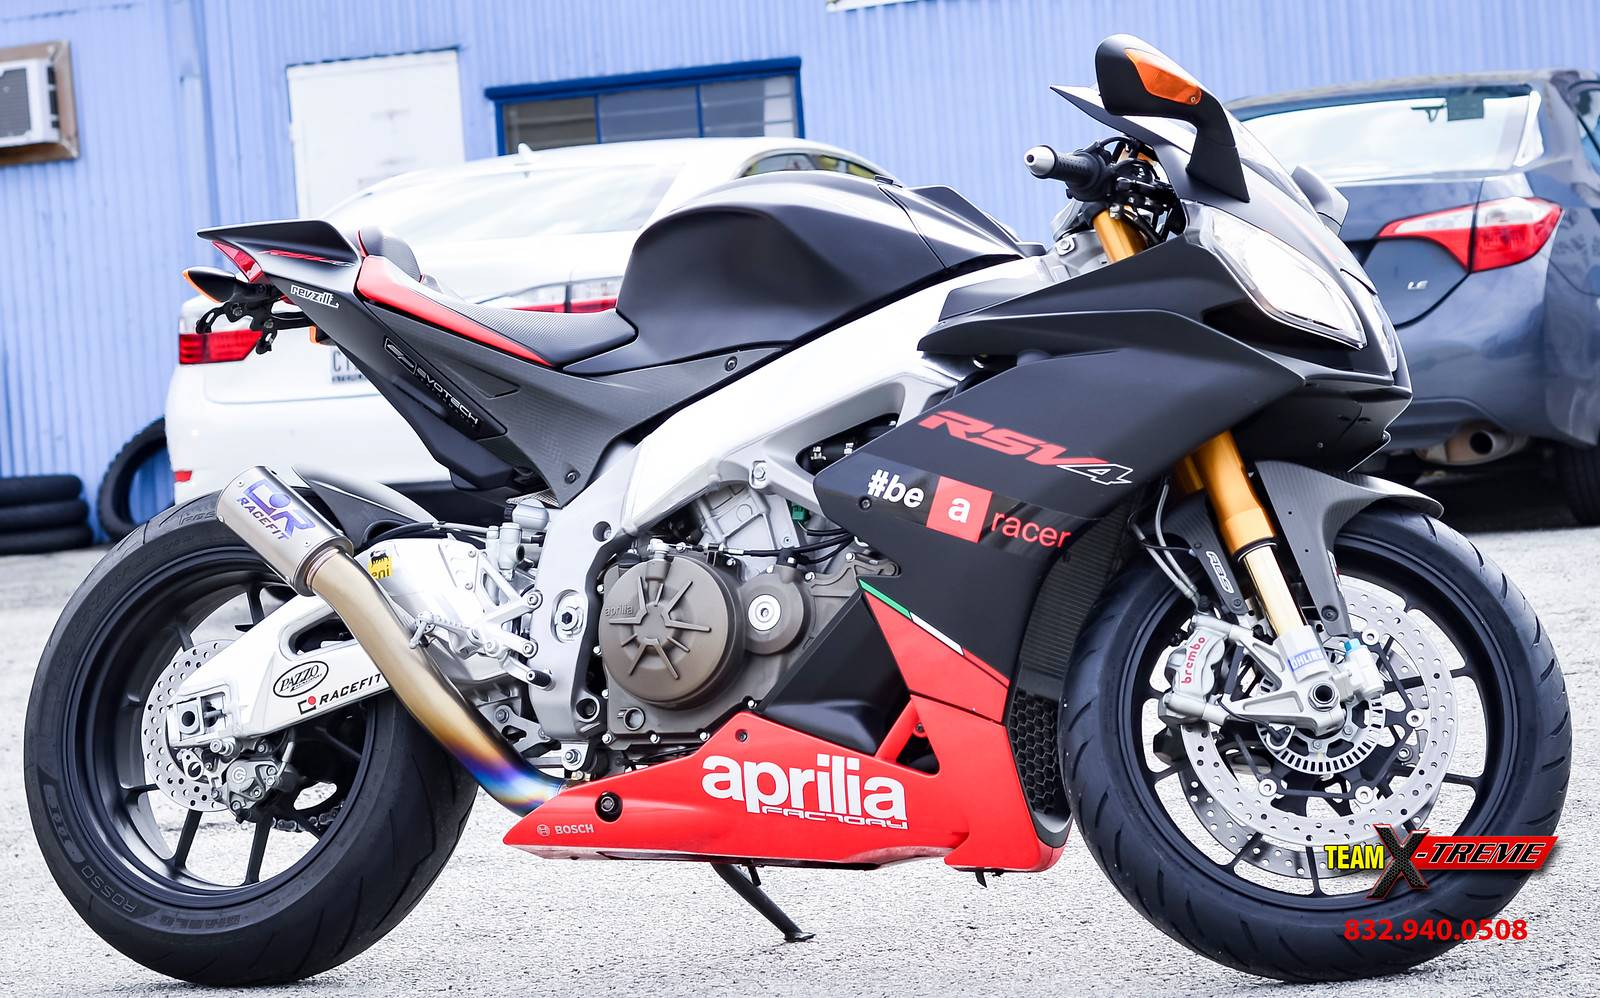 Used 2015 Aprilia Rsv4 Factory Aprc Abs Motorcycles In Houston Tx